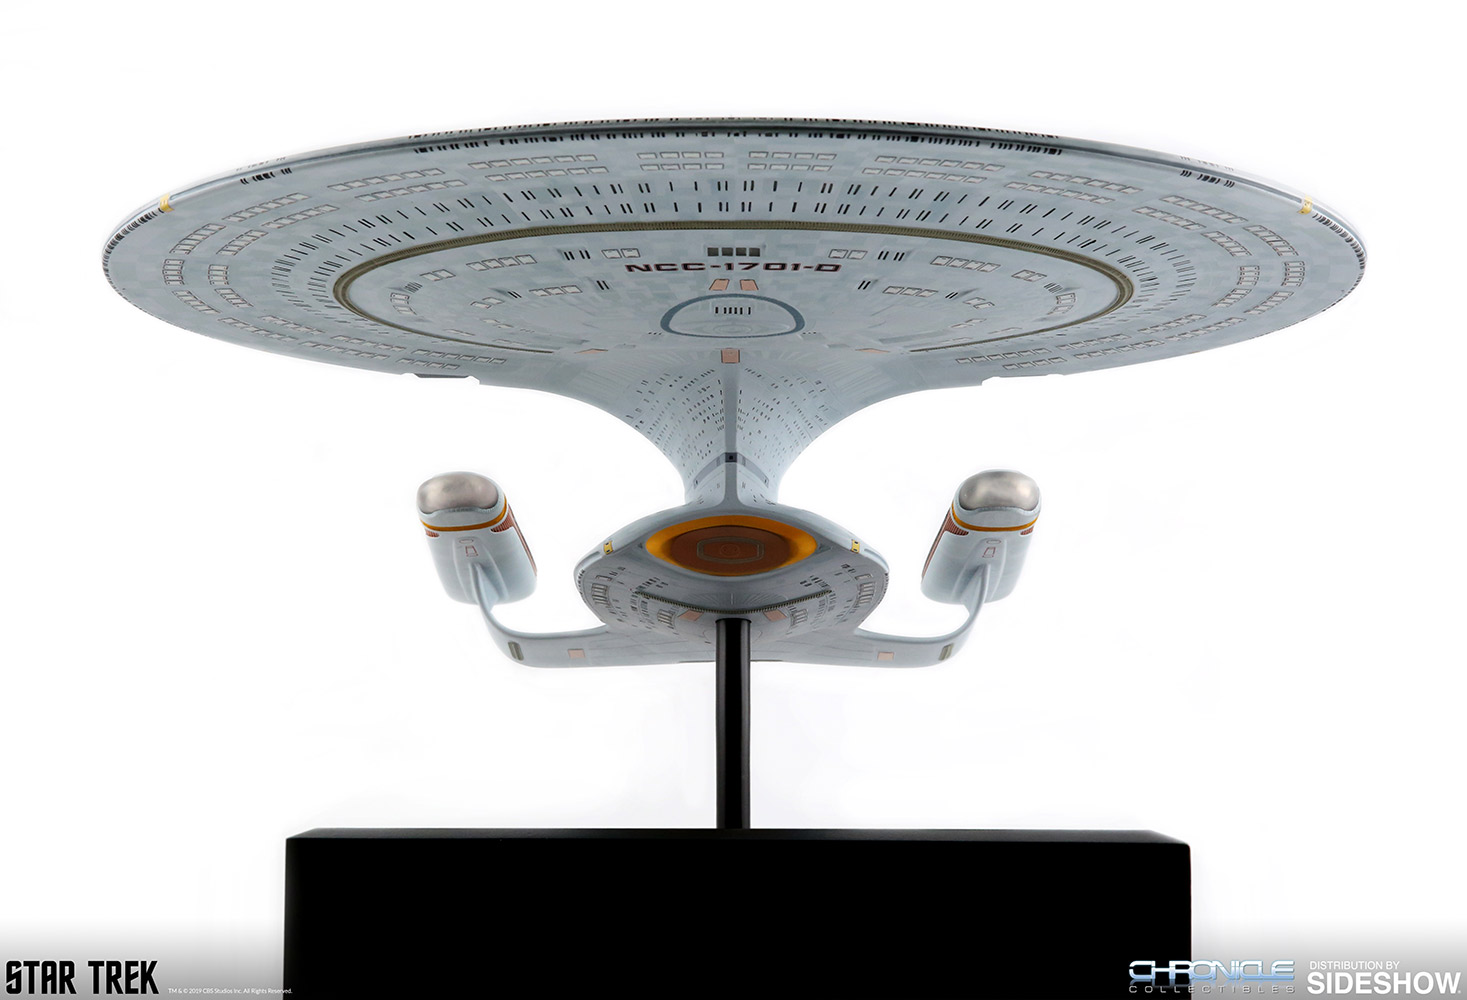 Star Trek USS Enterprise NCC-1701-D Replica by Chronicle Collectibles